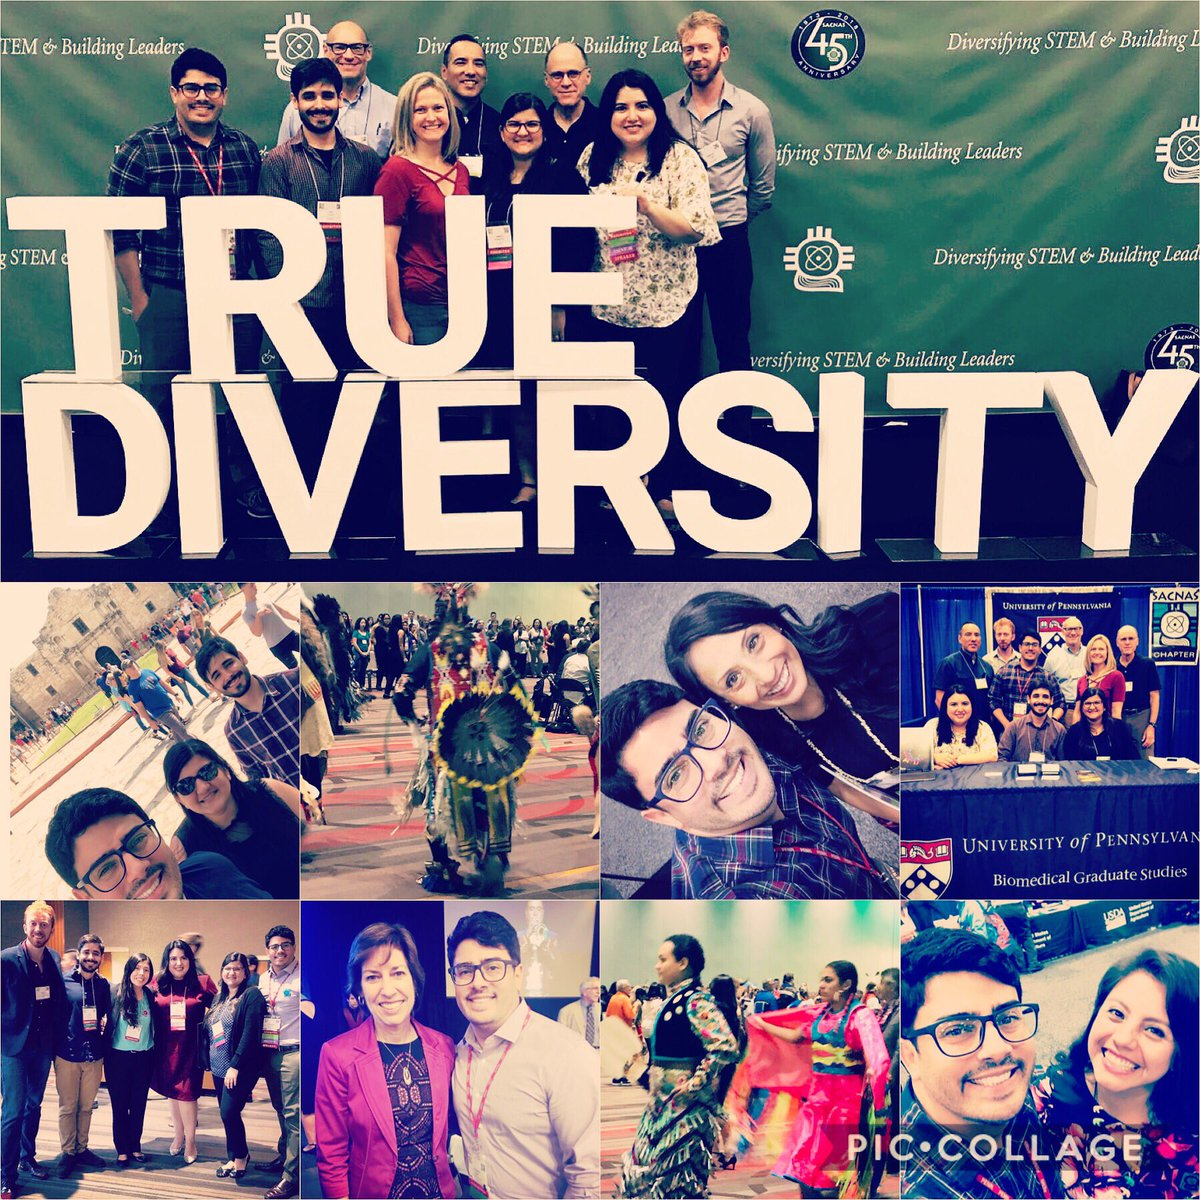 The @sacnas conference celebrates our science &amp; culture in a welcoming and inclusive environment. I encourage all faculty &amp; administrators across the nation to attend &amp; work to identify resources to provide their trainees w/ this awesome &amp; unique opportunity. #SACNAS2018 <br>http://pic.twitter.com/NHHiZsmtk7